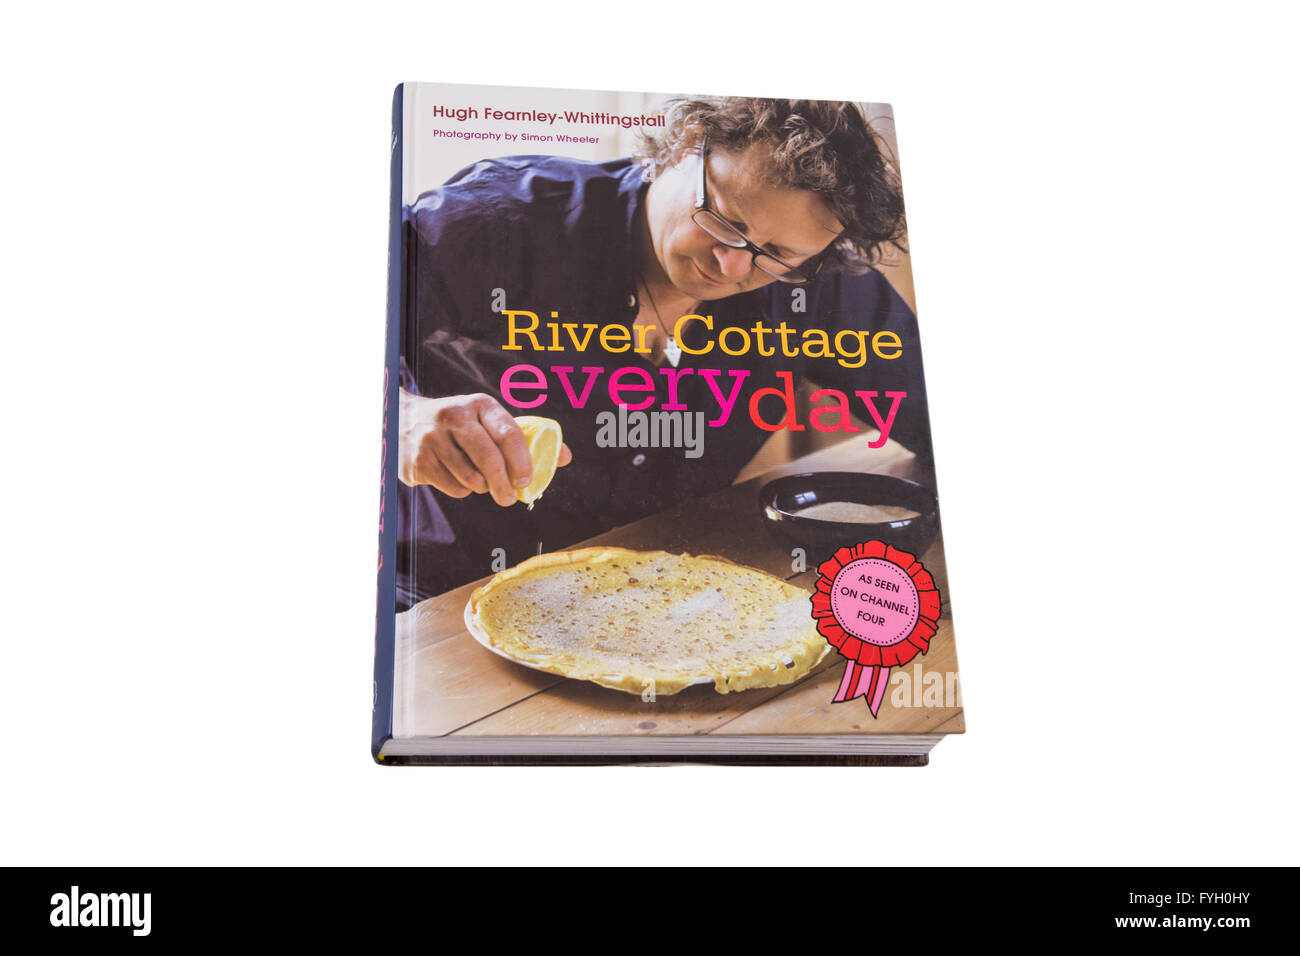 River Cottage cada día por Hugh Fearnley-Whittingstall Imagen De Stock